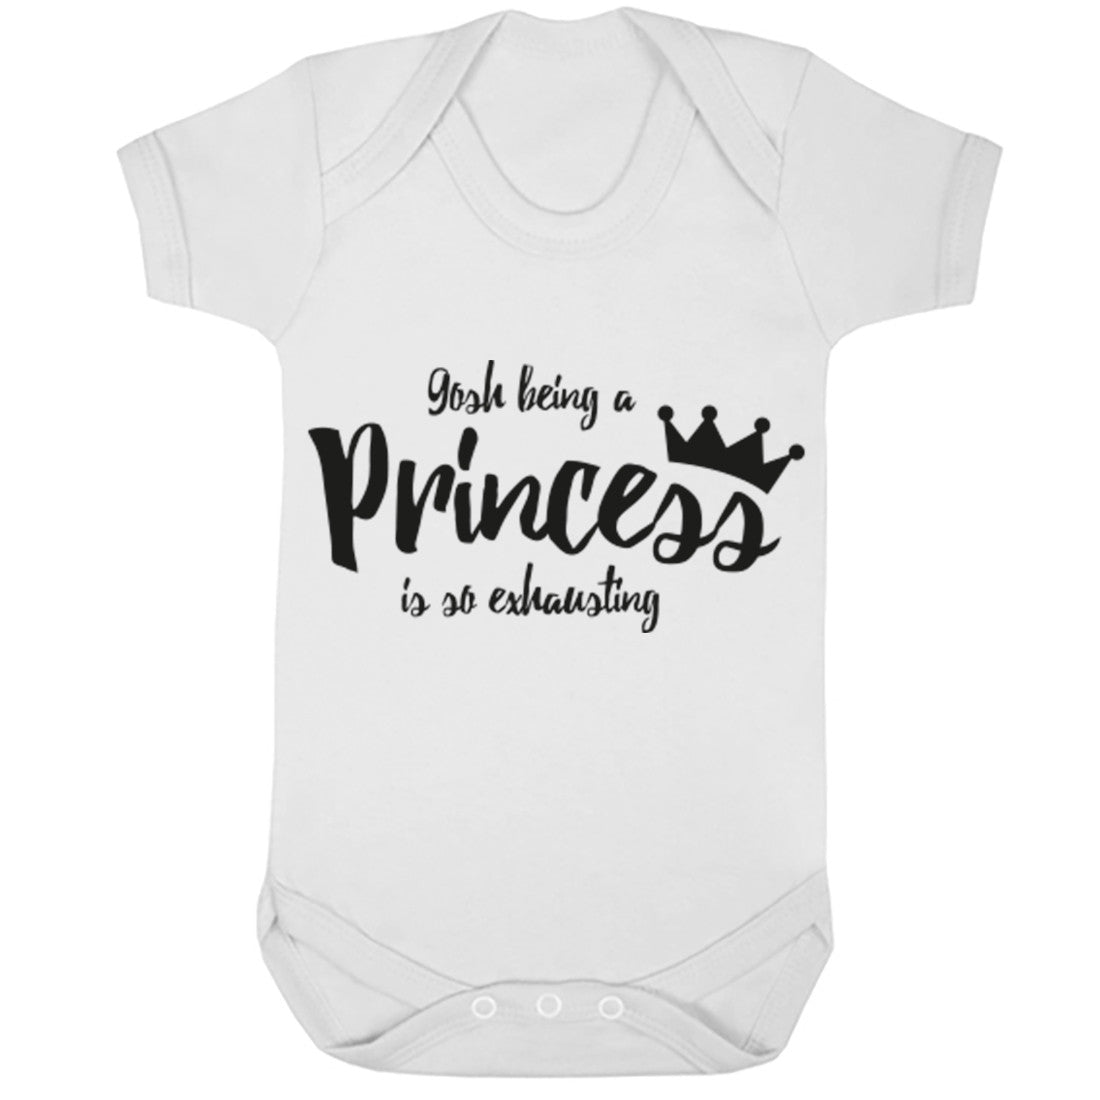 Gosh Being A Princess Is So Exhausting Baby Vest K0178 - Illustrated Identity Ltd.